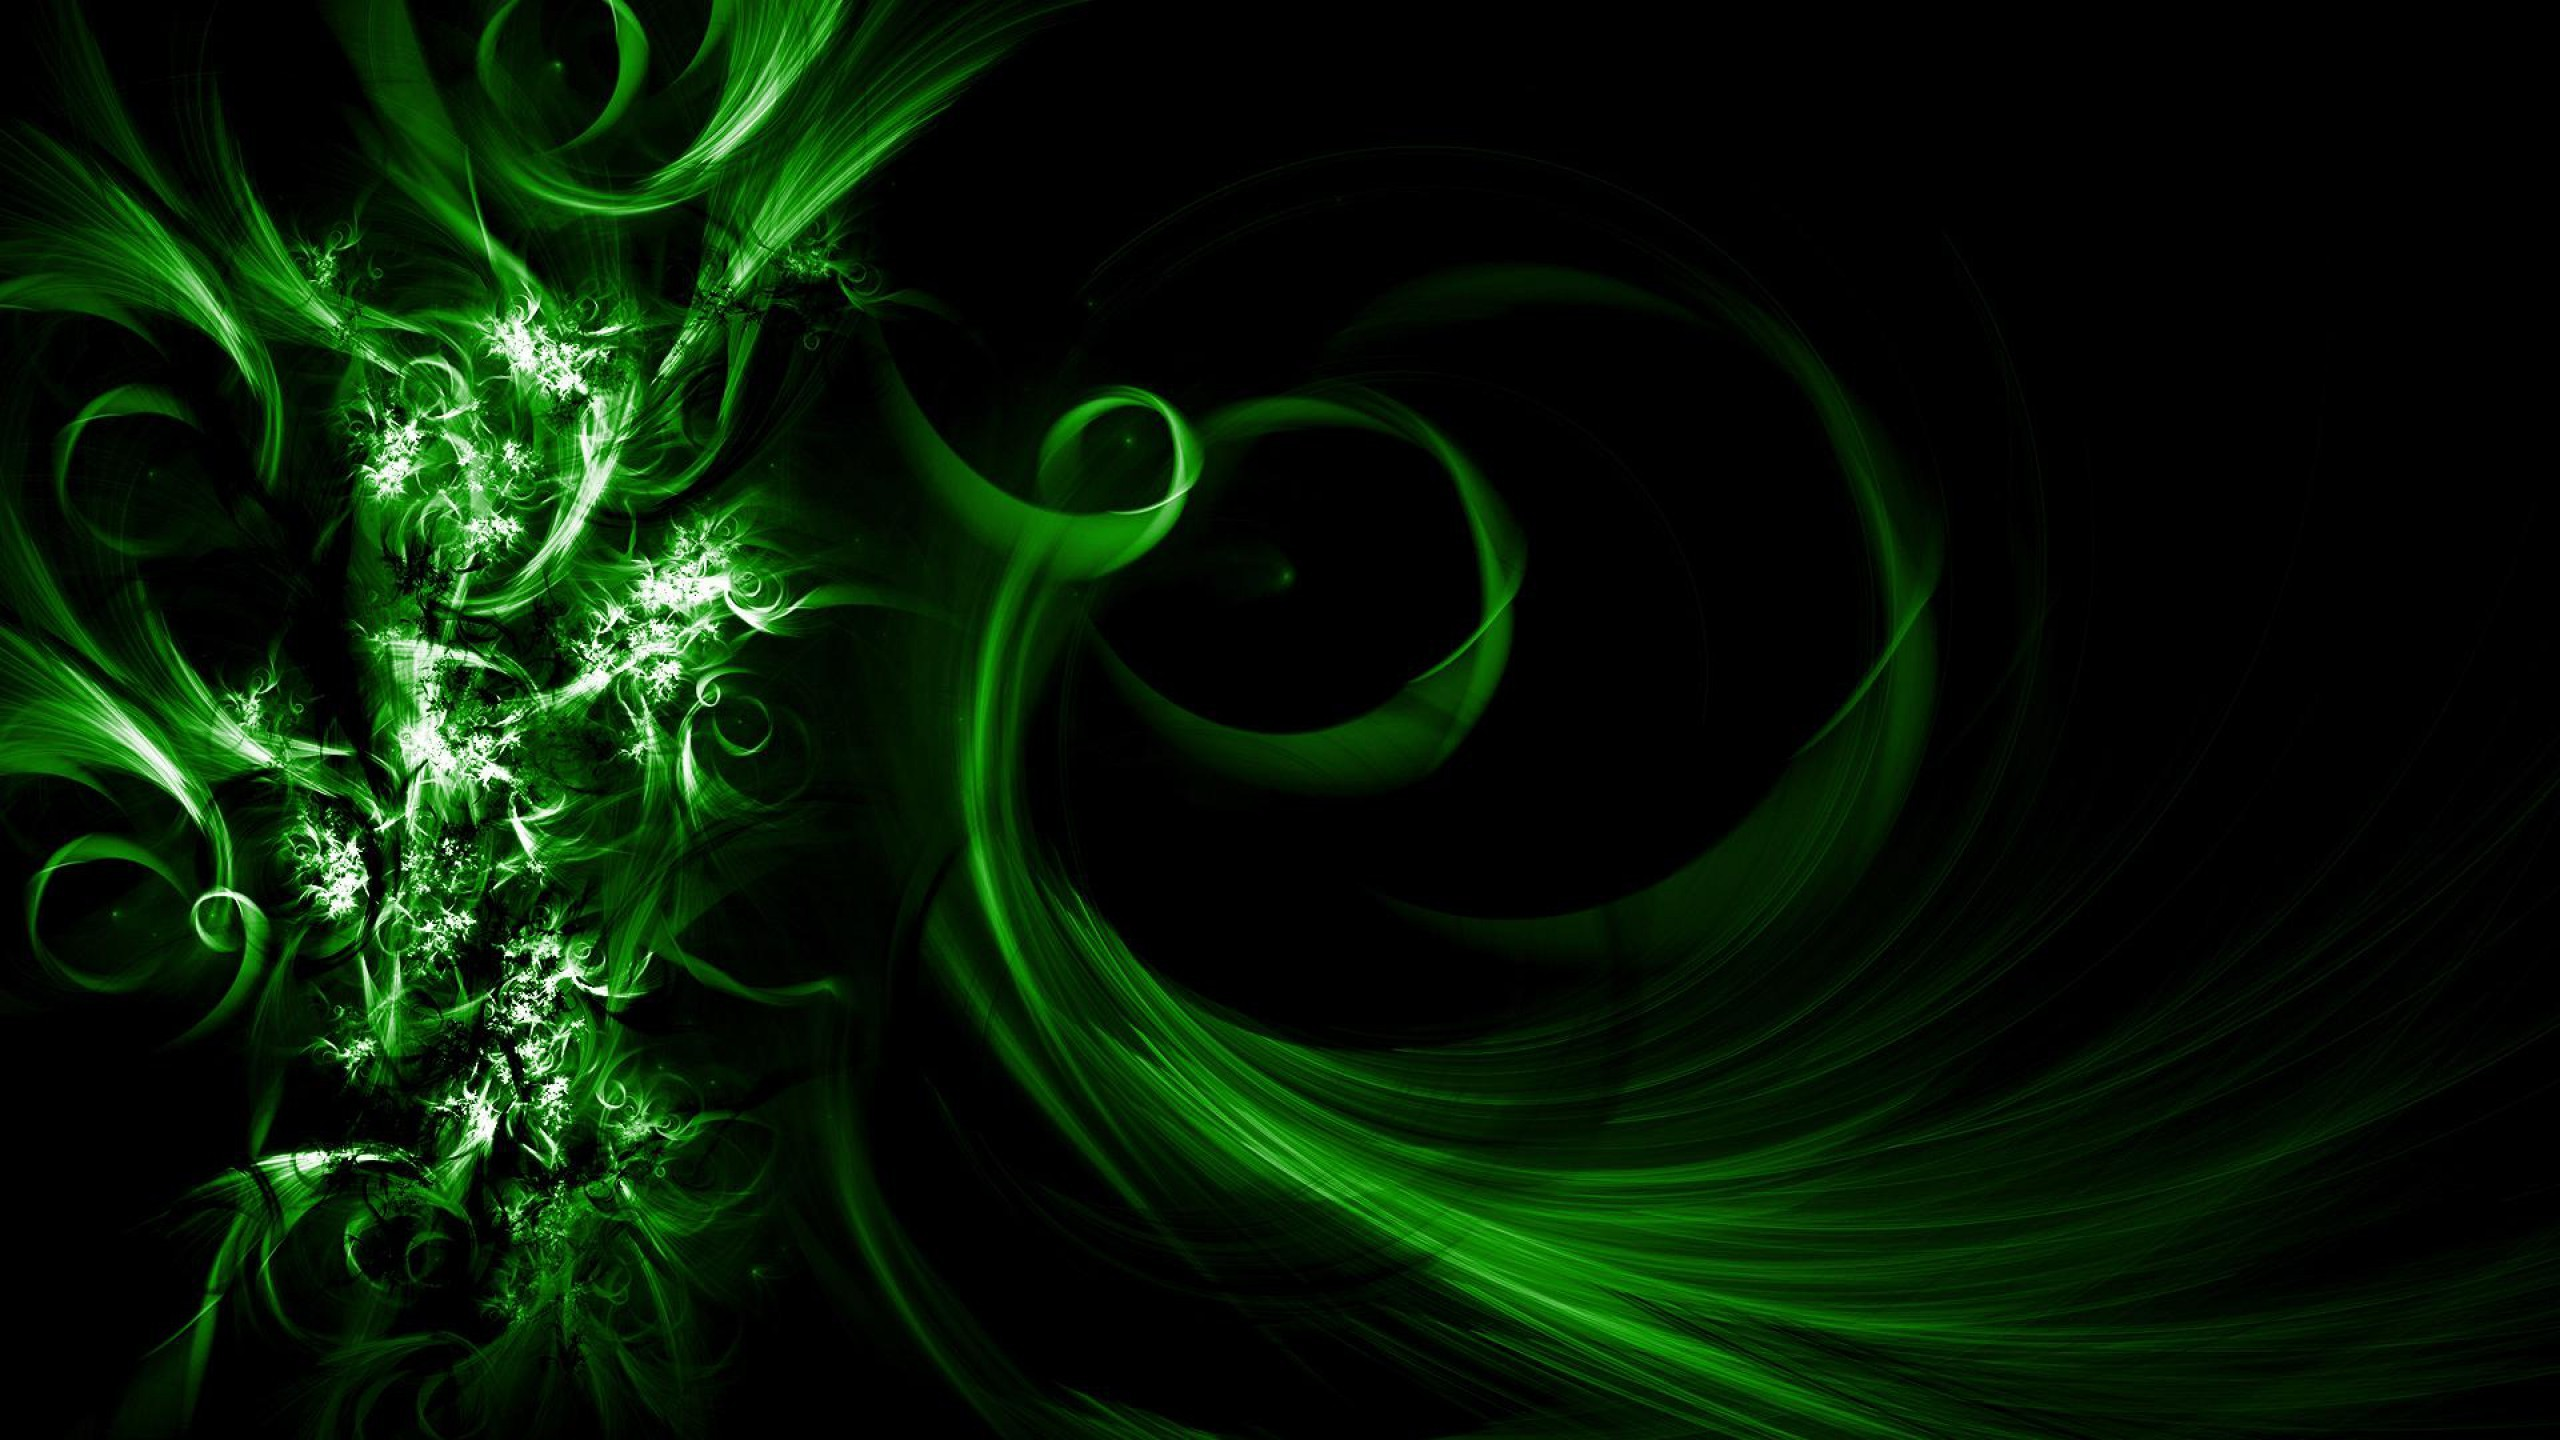 Cool Abstract Wallpaper with an Image of Dark Green Waves – HD Wallpapers  for Free